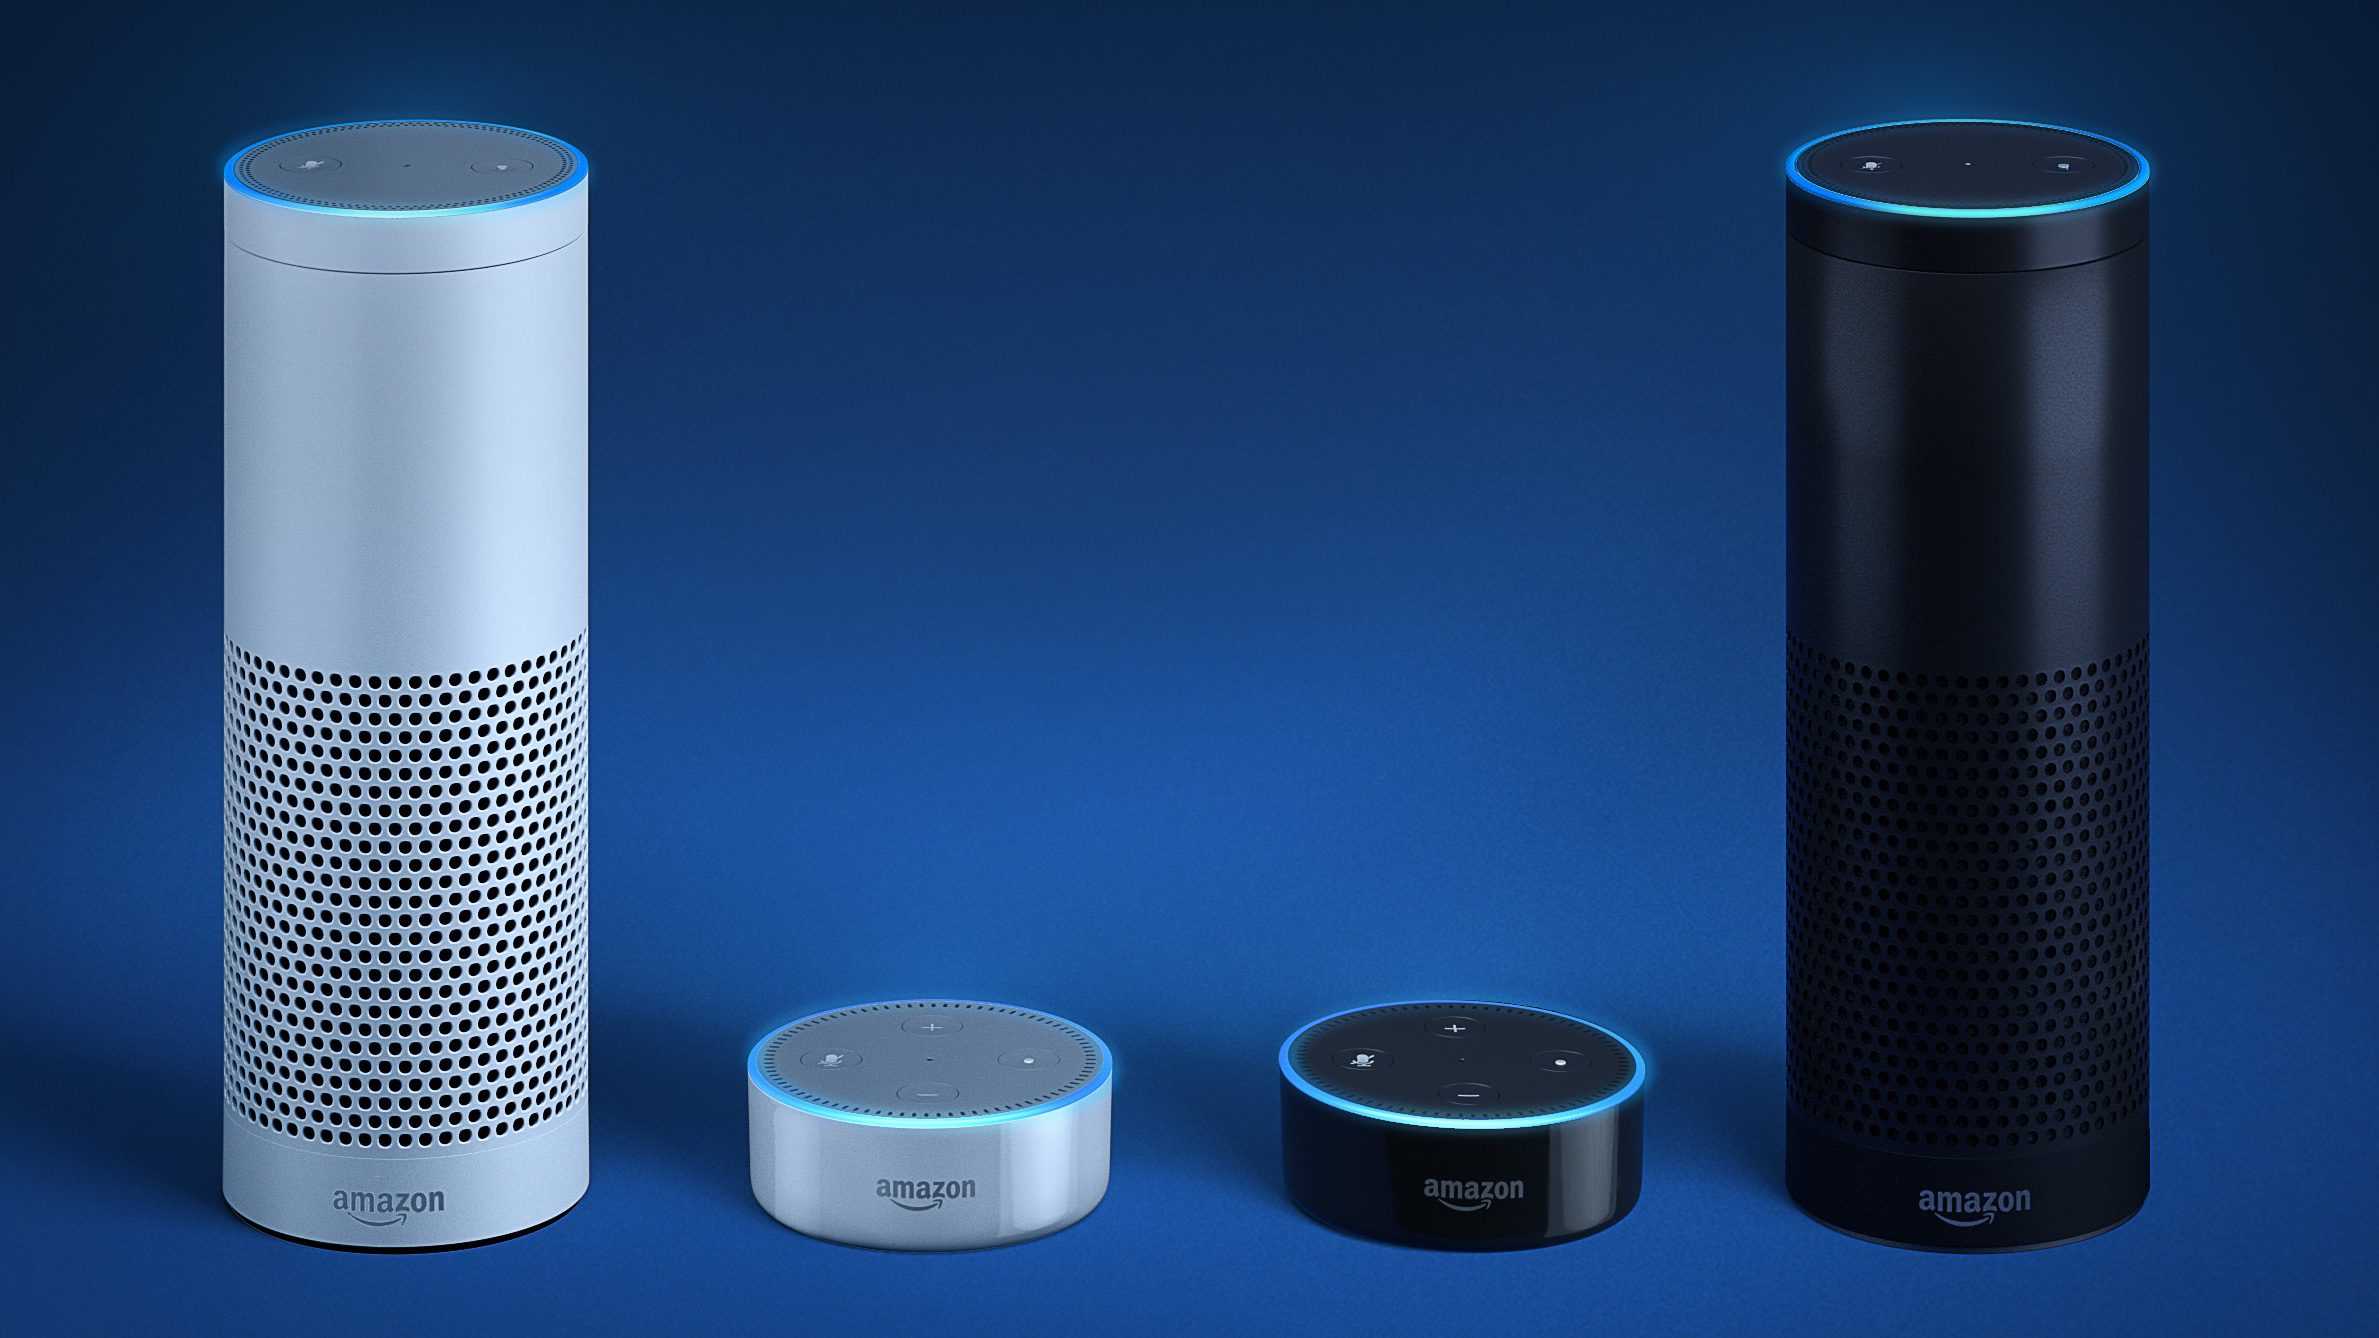 How to connect Amazon Alexa and Apple Reminders using IFTTT